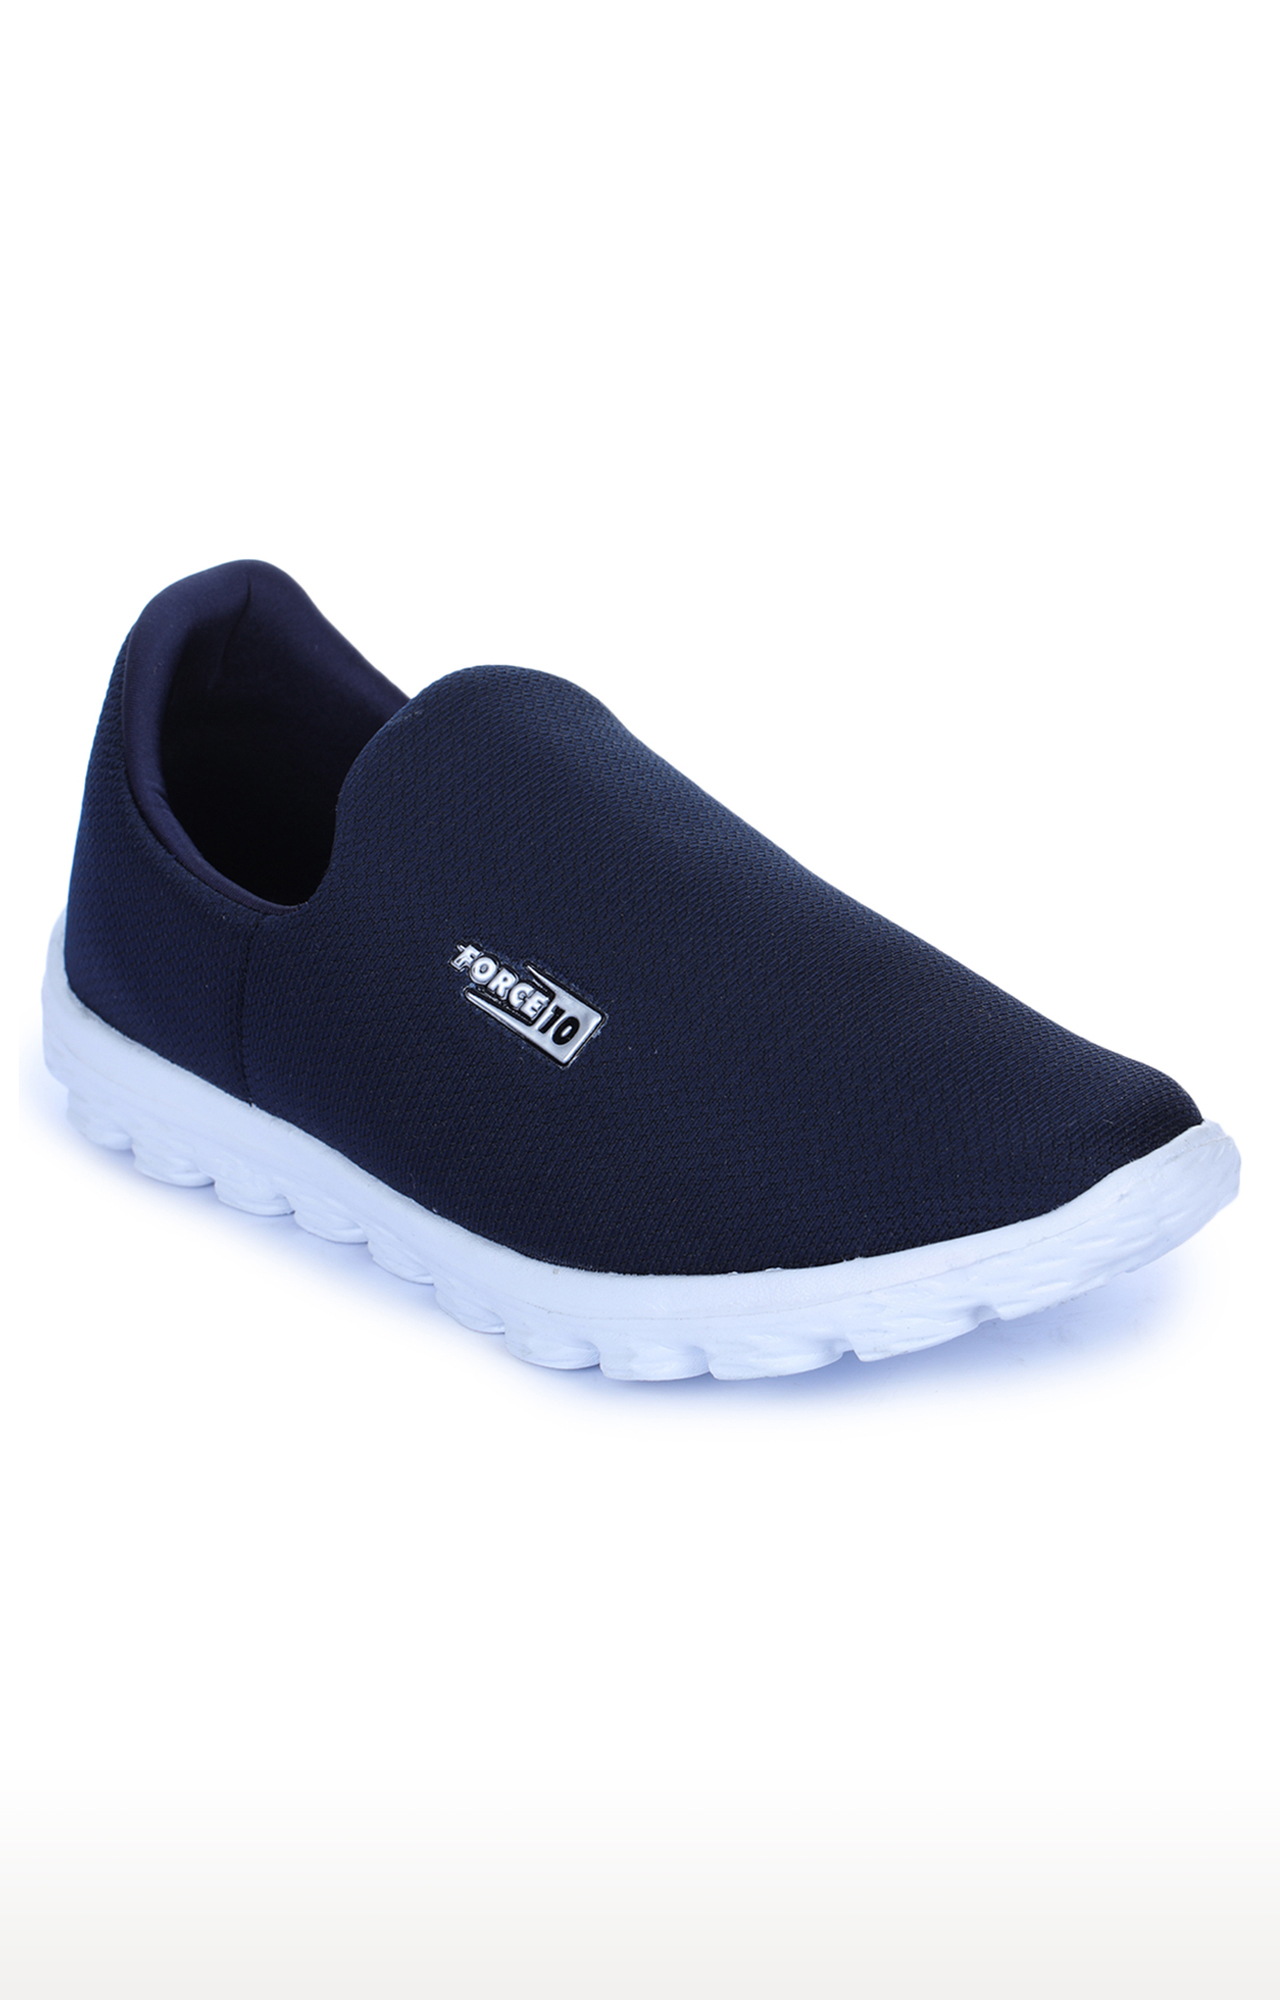 Liberty | Force 10 by Liberty Blue Slip-on Sports Shoes